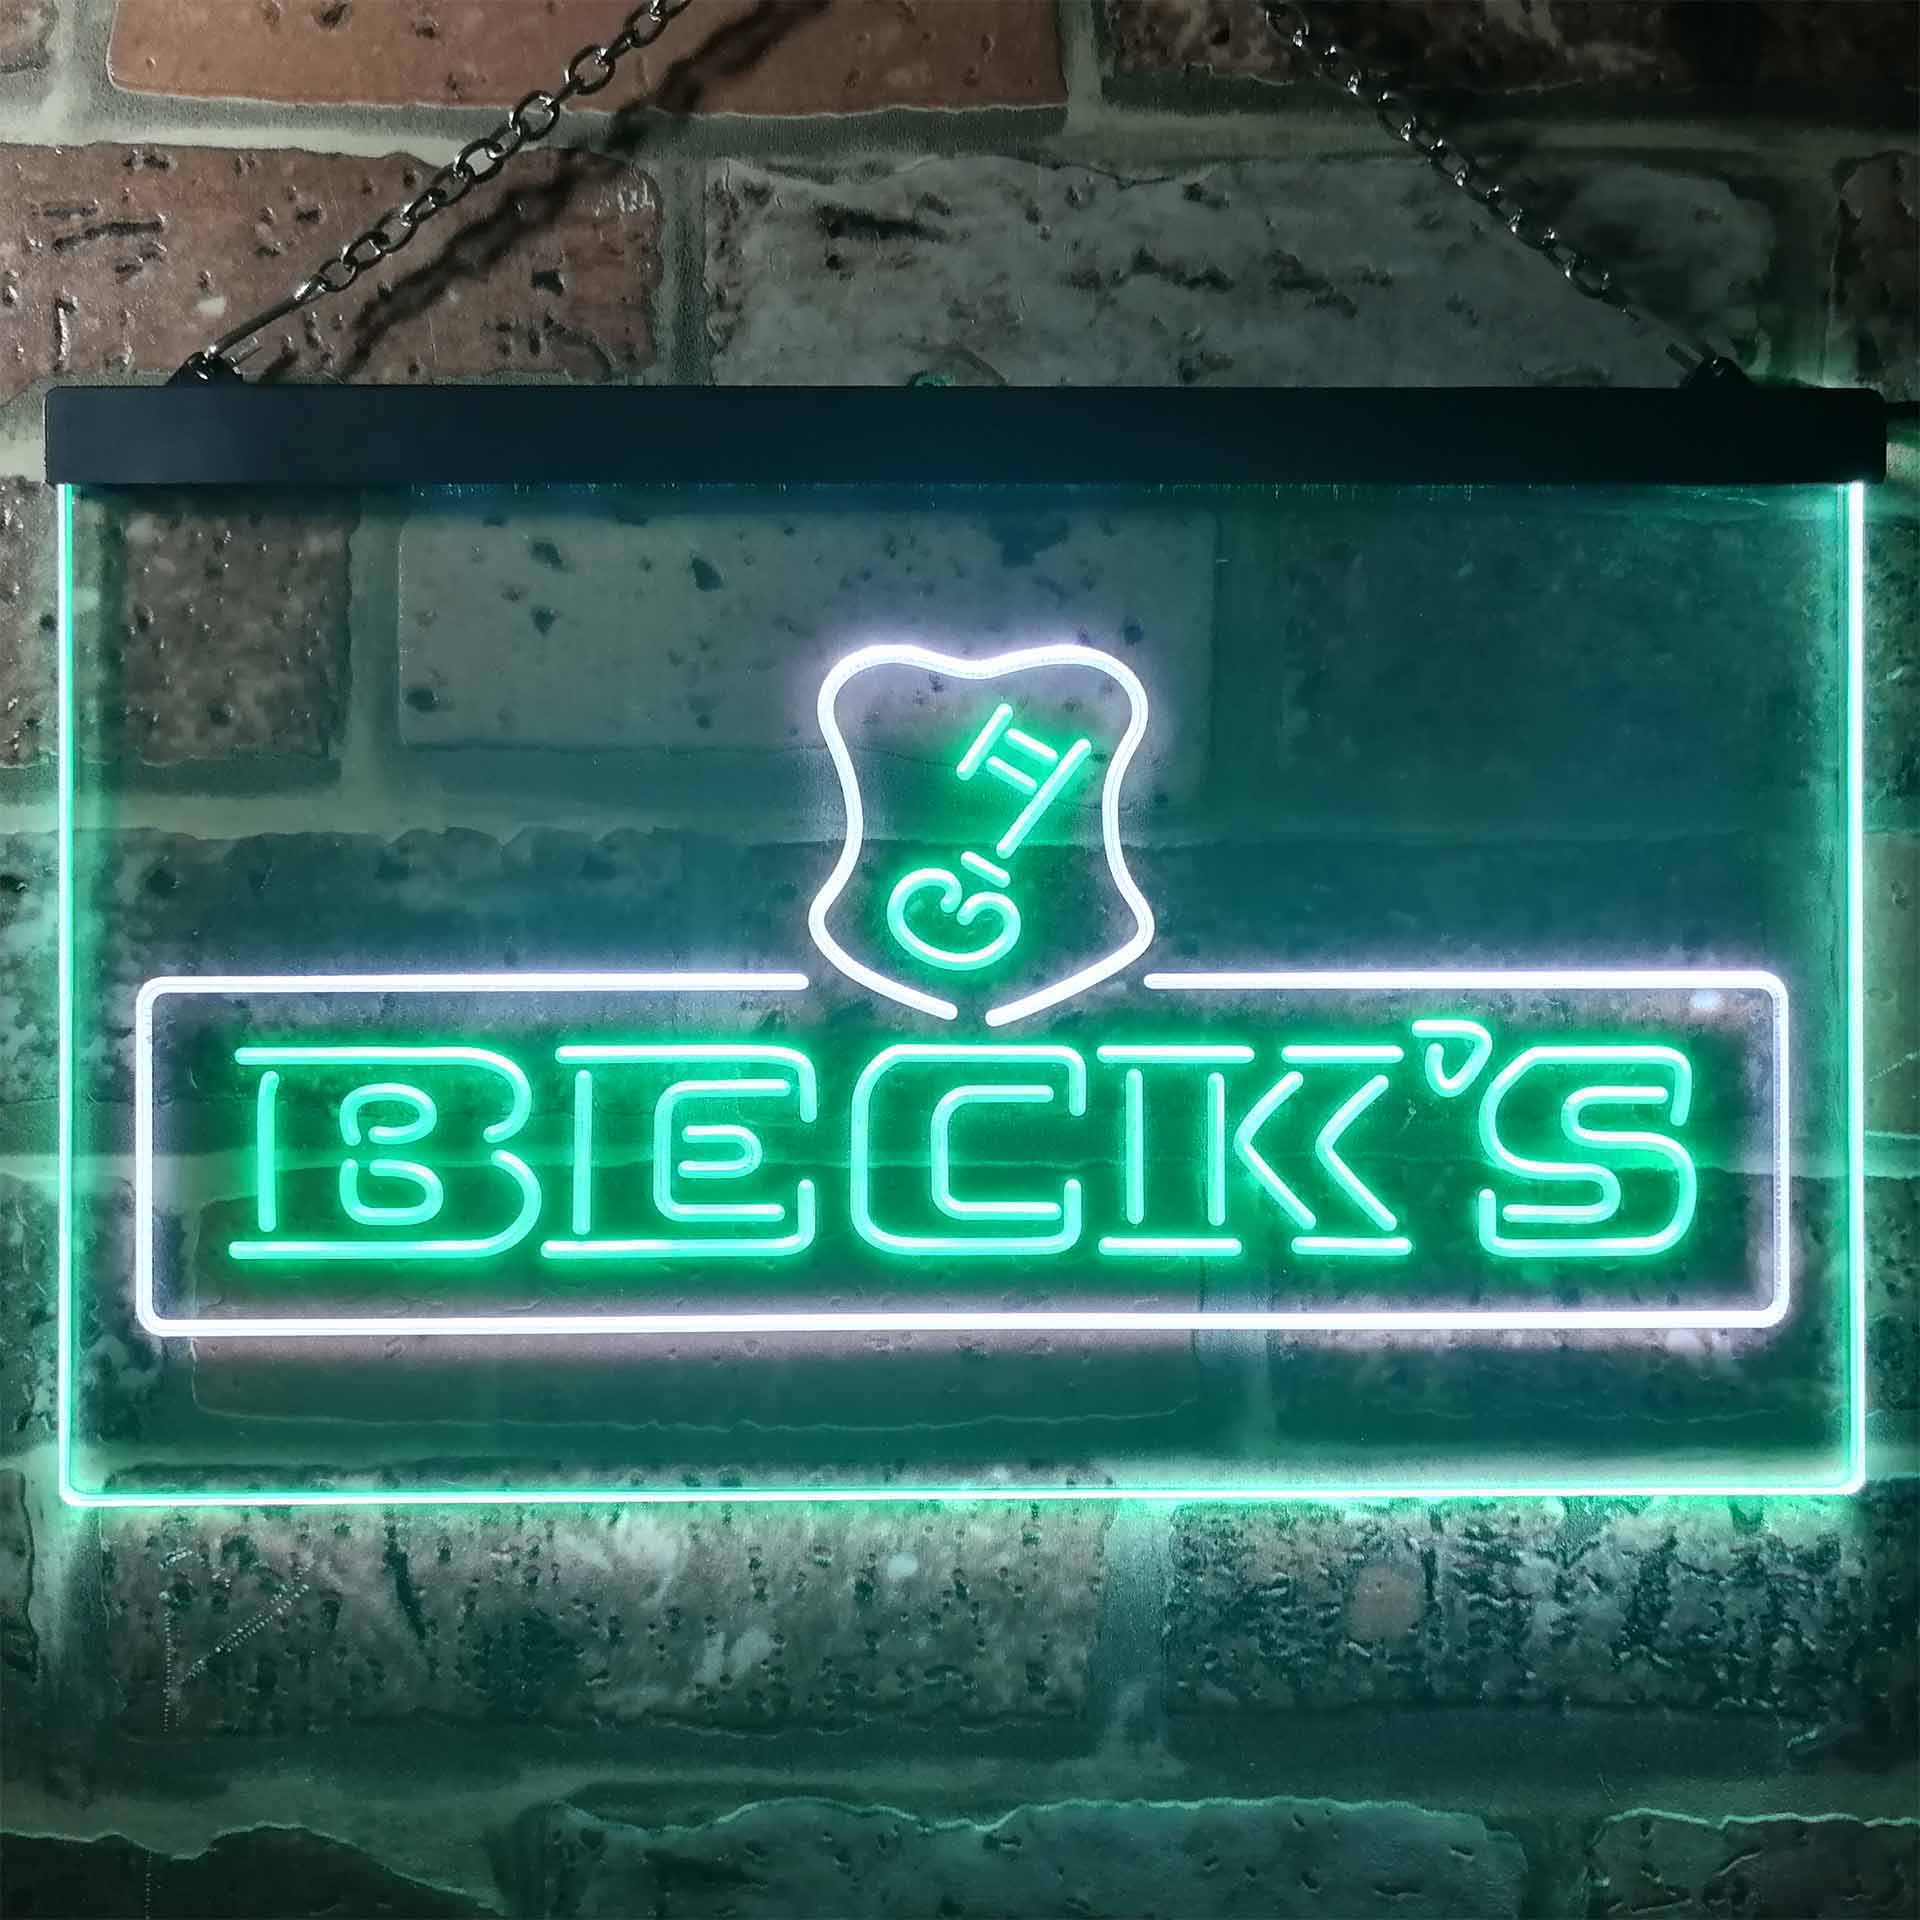 Beck's Beer Dual Color LED Neon Sign ProLedSign